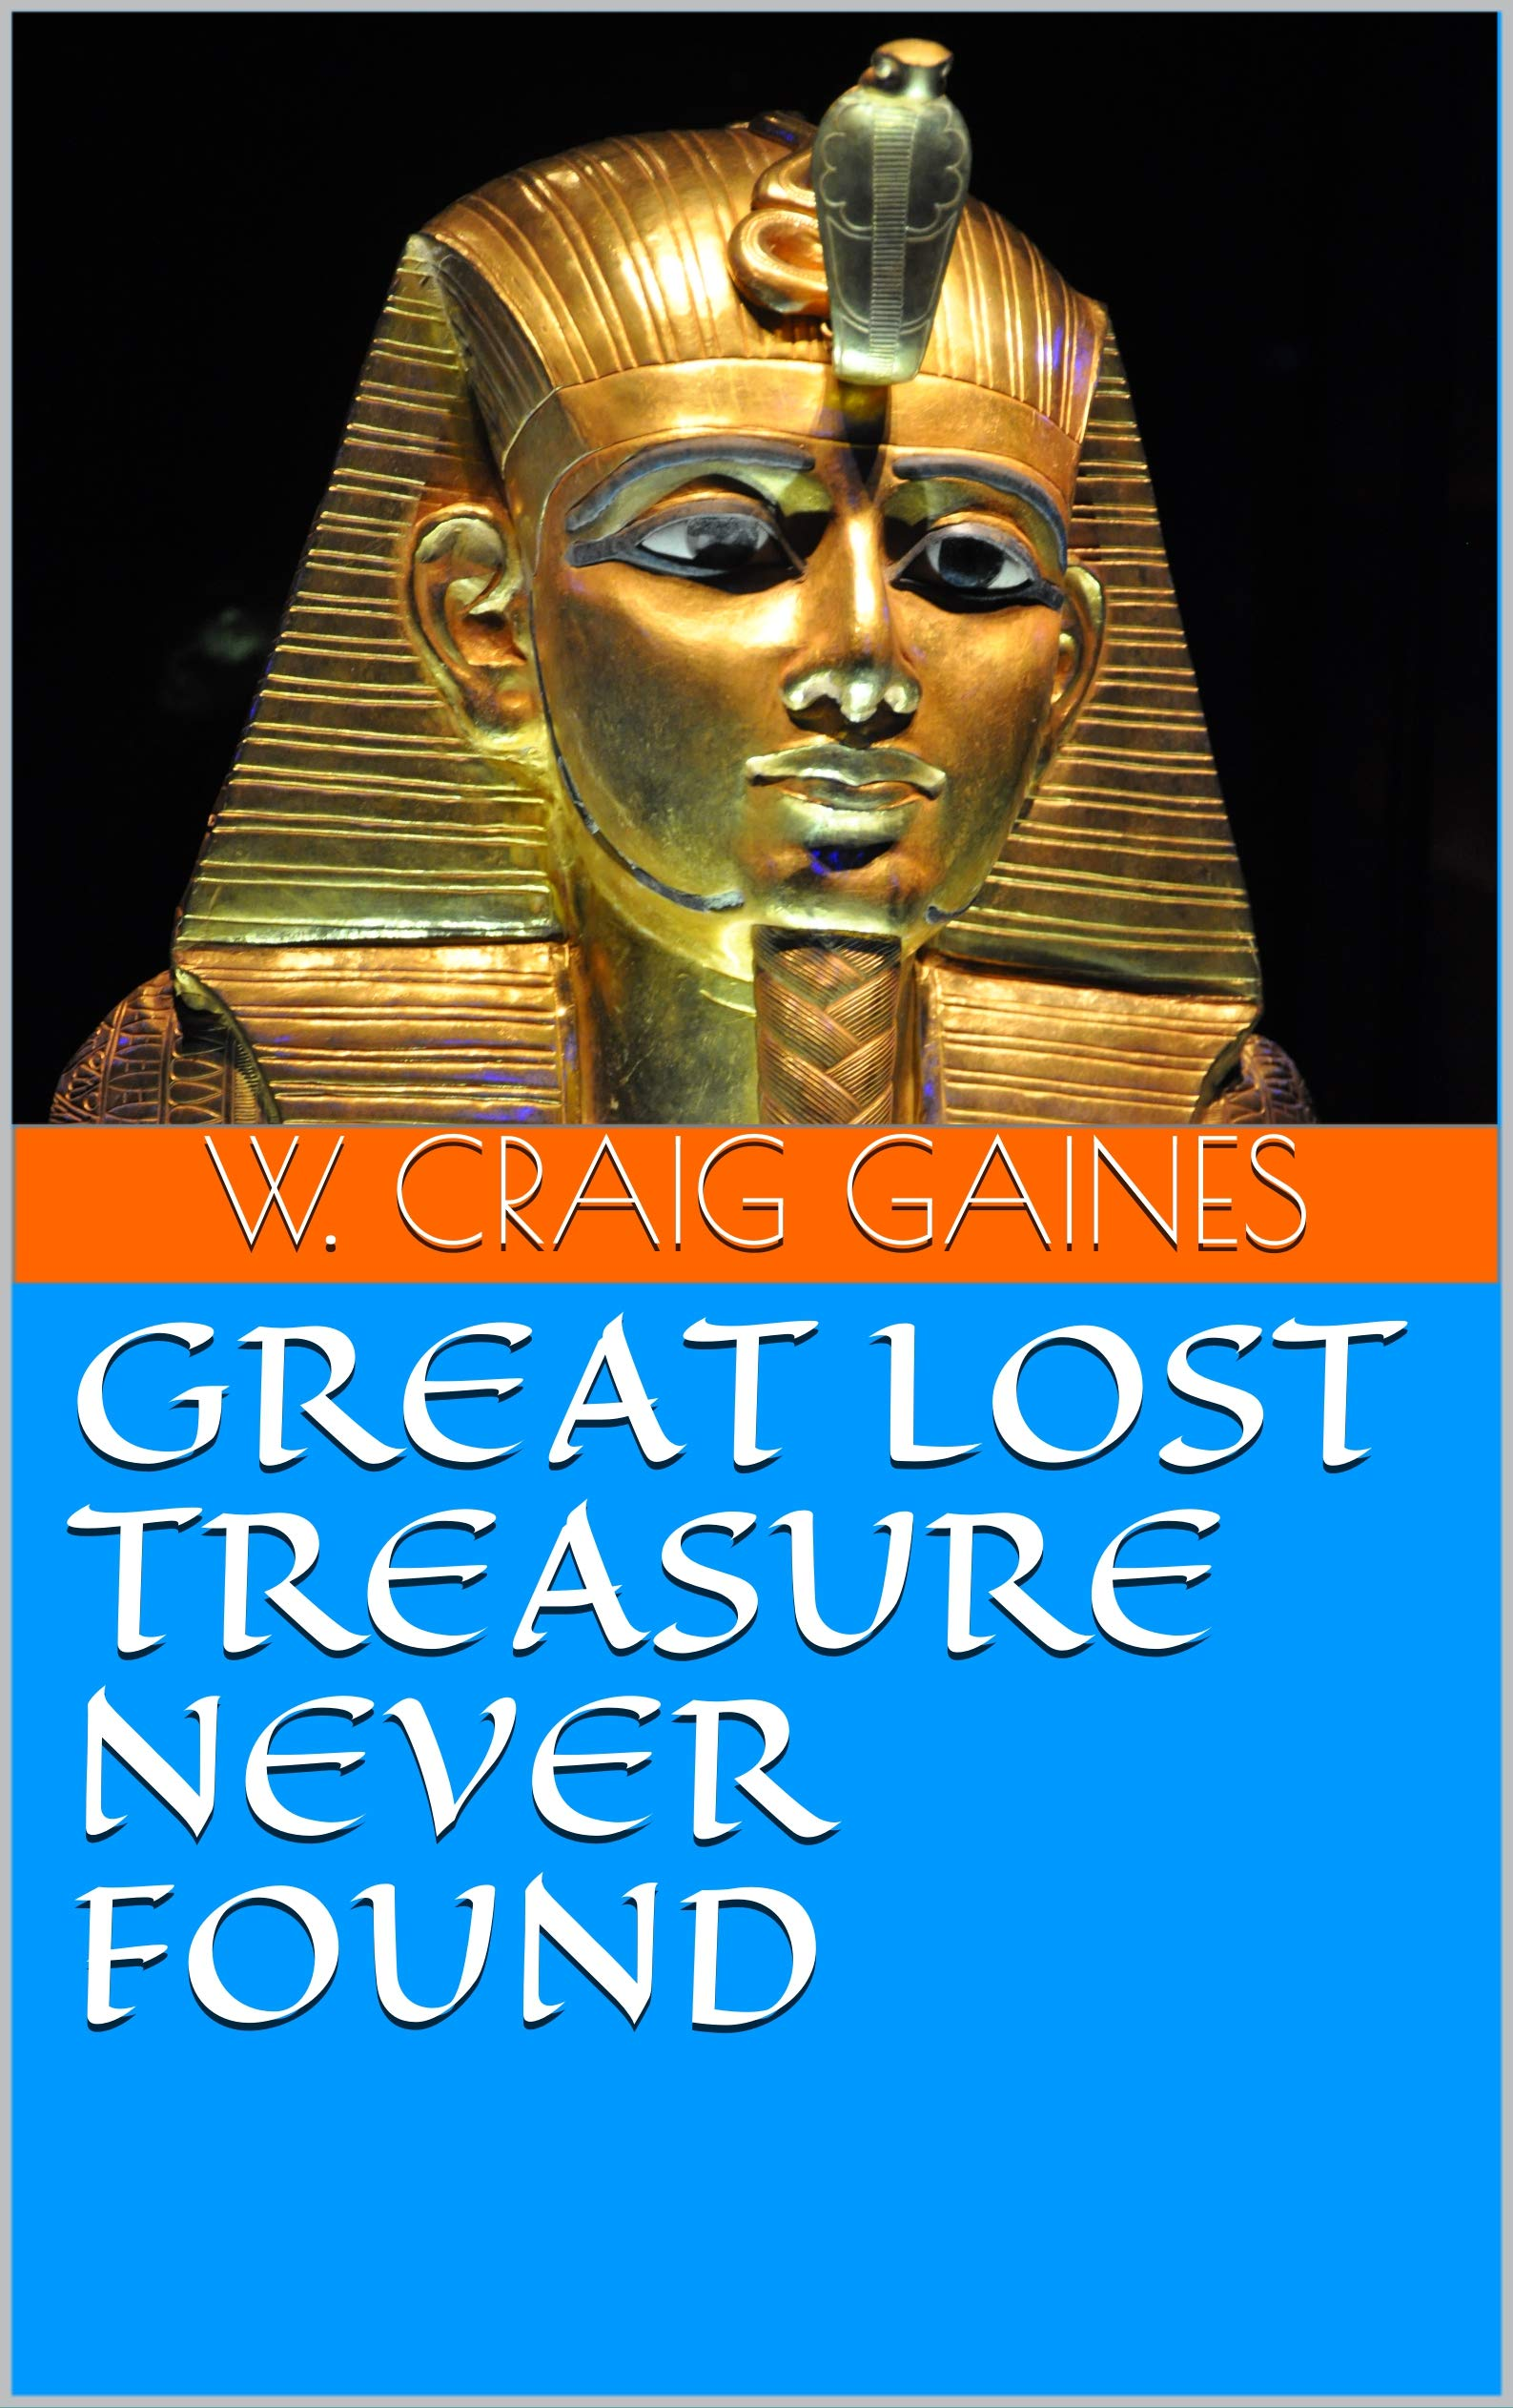 GREAT LOST TREASURE NEVER FOUND